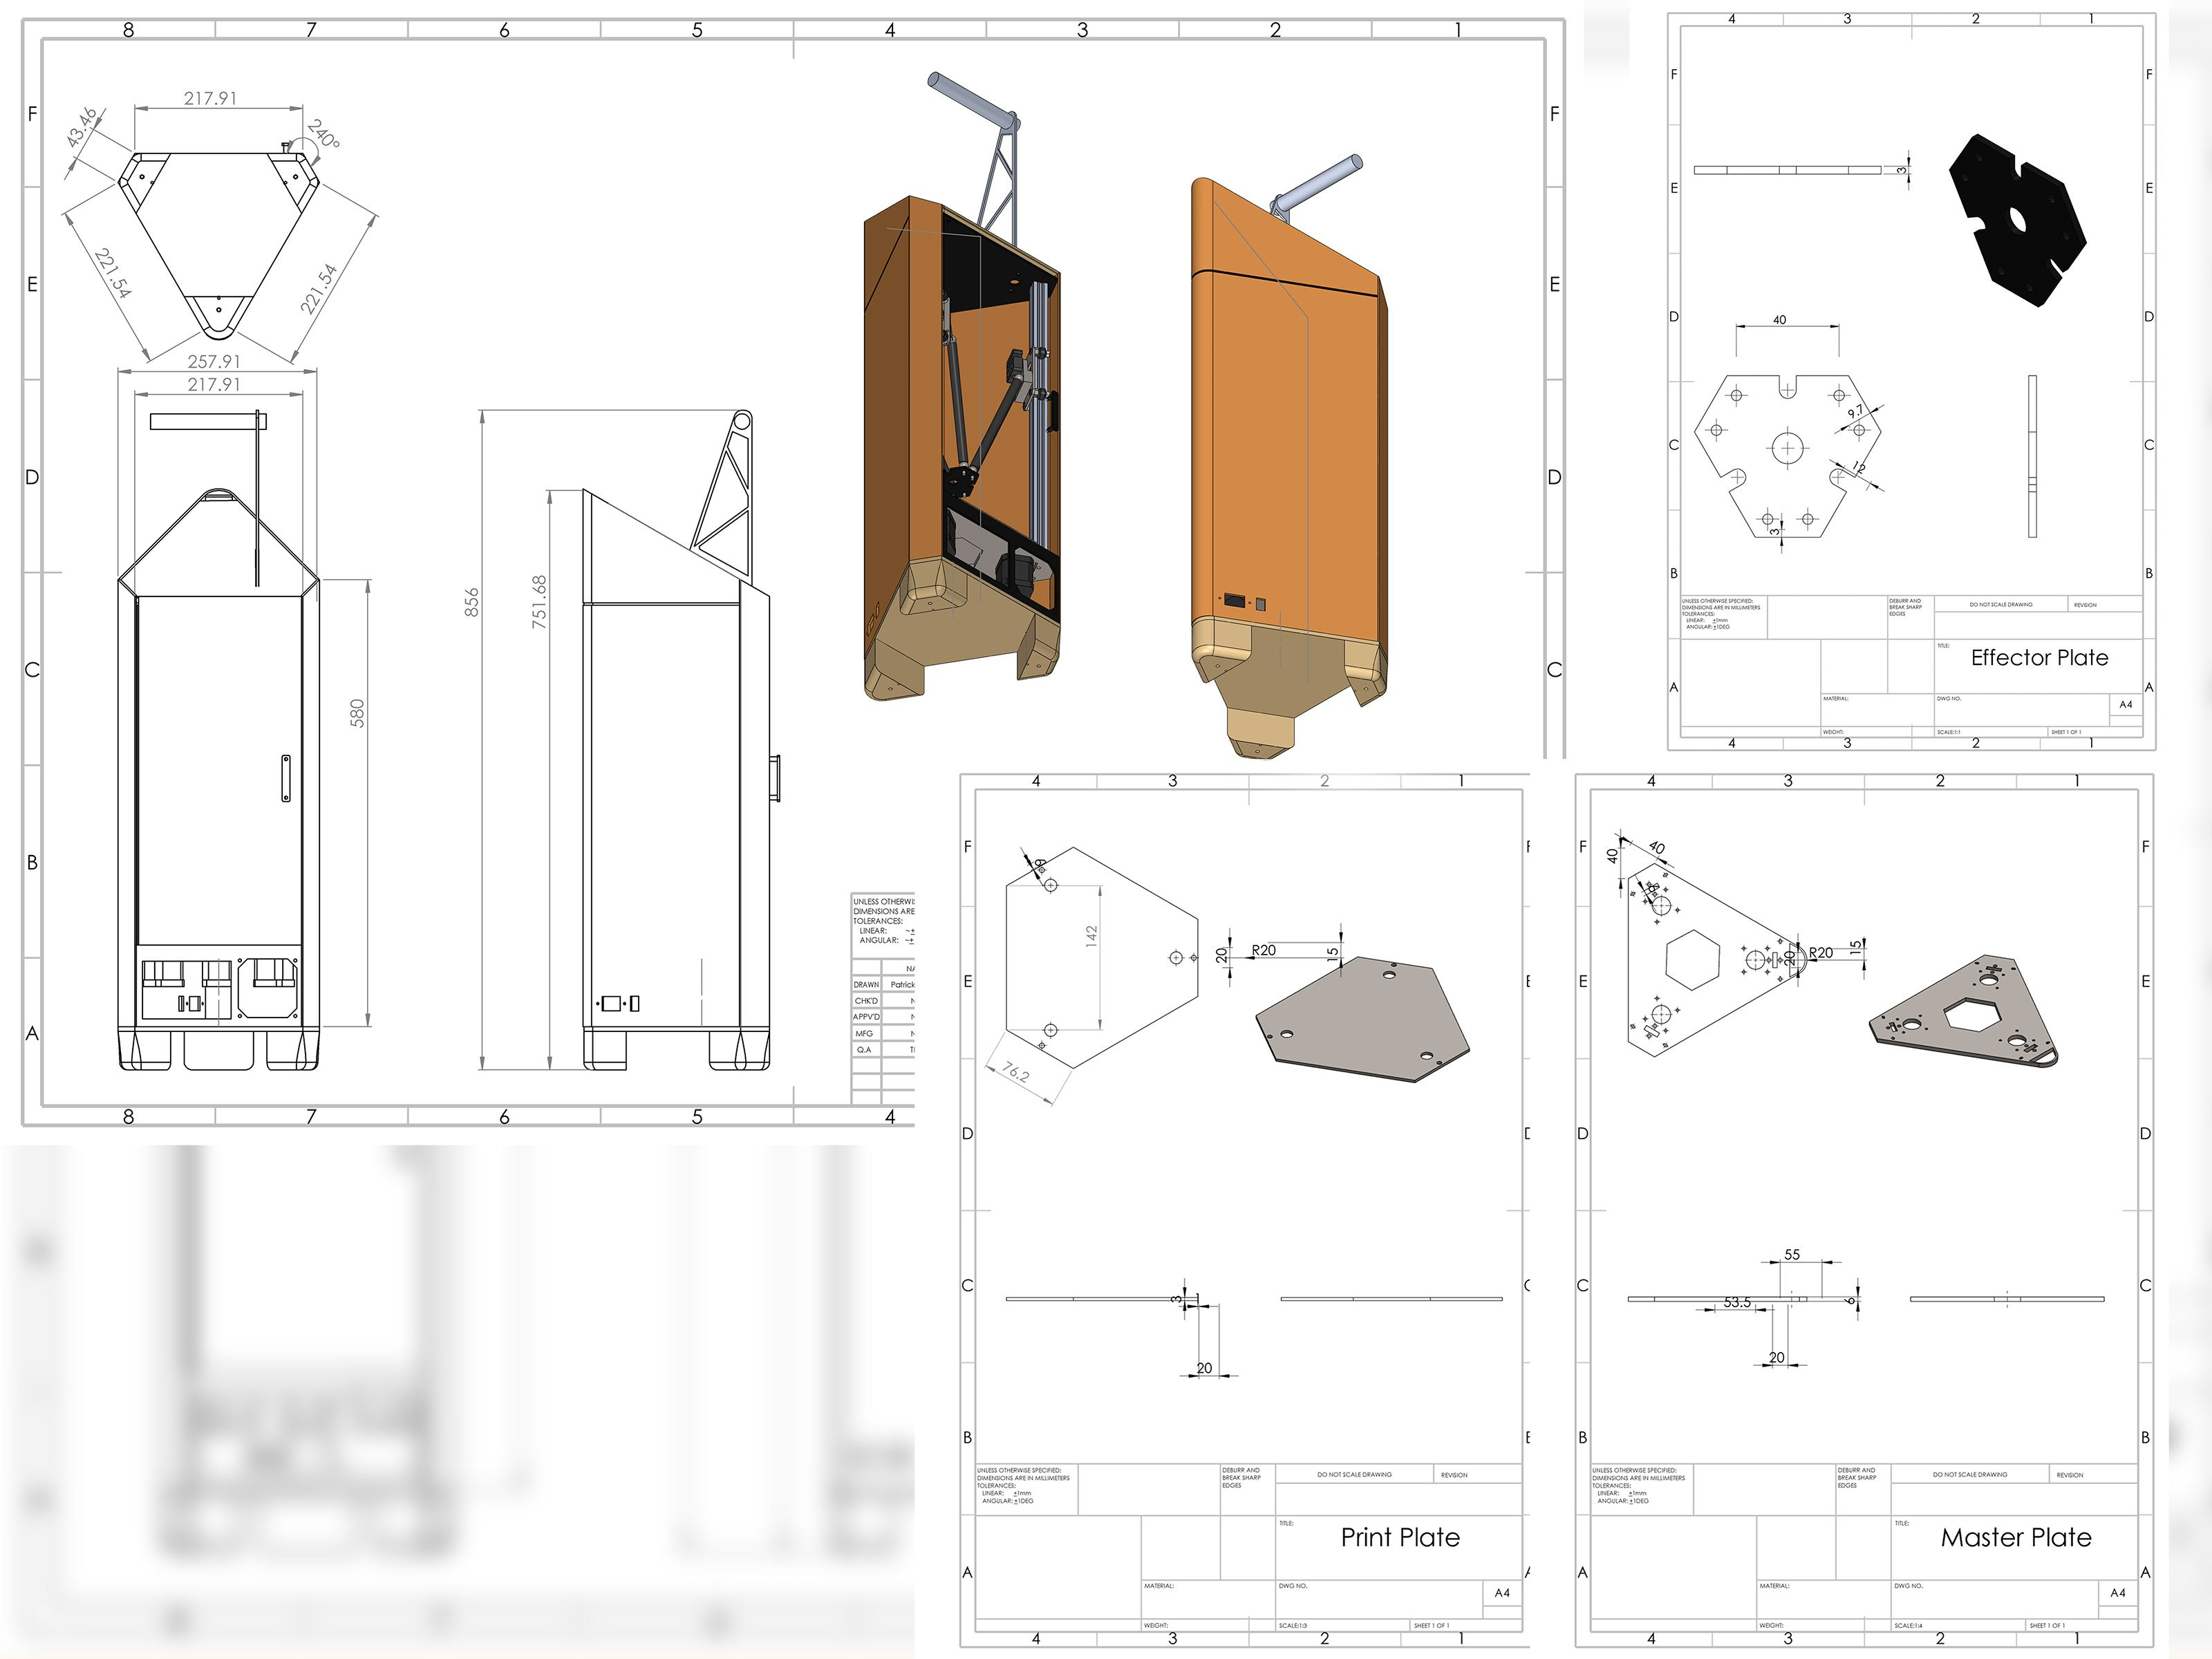 Technical drawings - Done to the BS 8888 standard